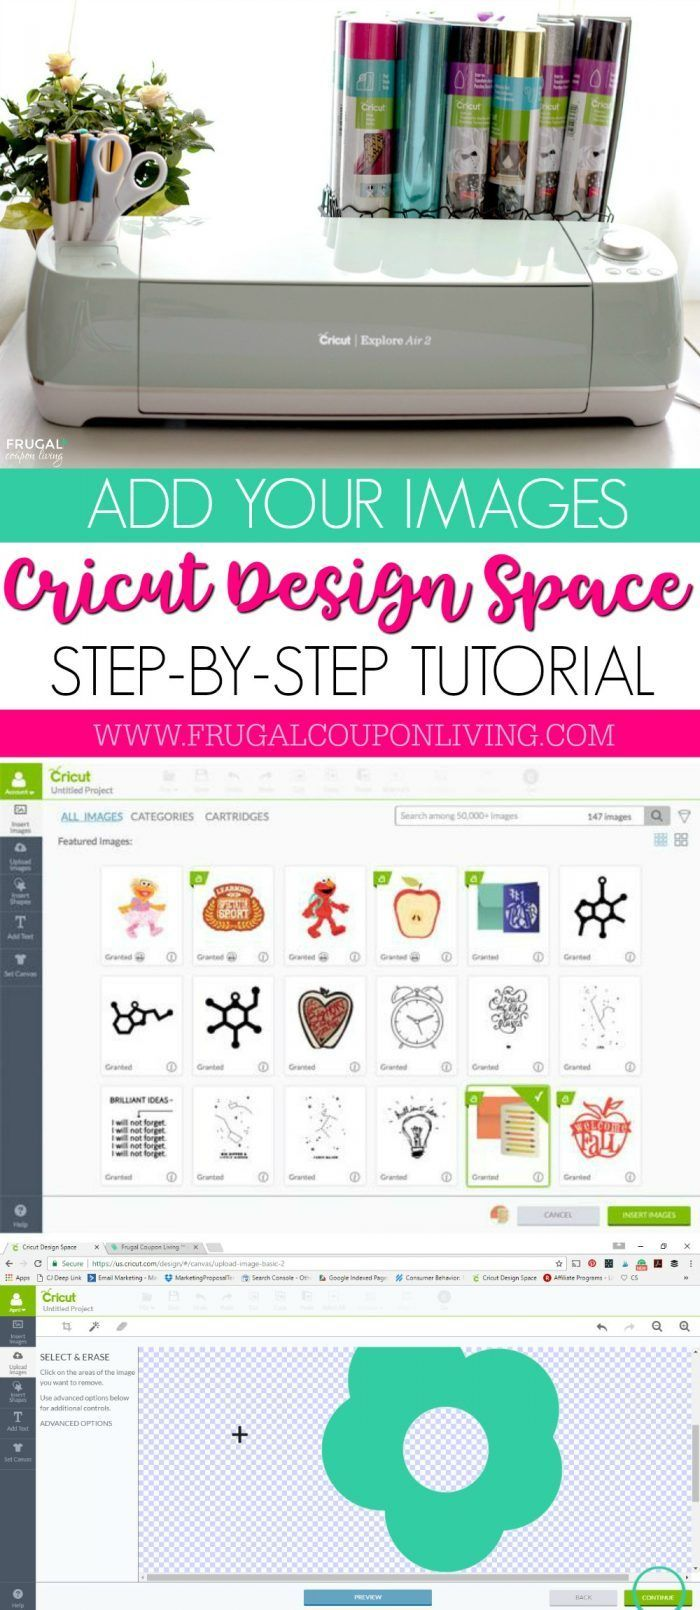 Easy Step by Step Circut Tutorial – How to Add Your Own Images to Cricut Desig...